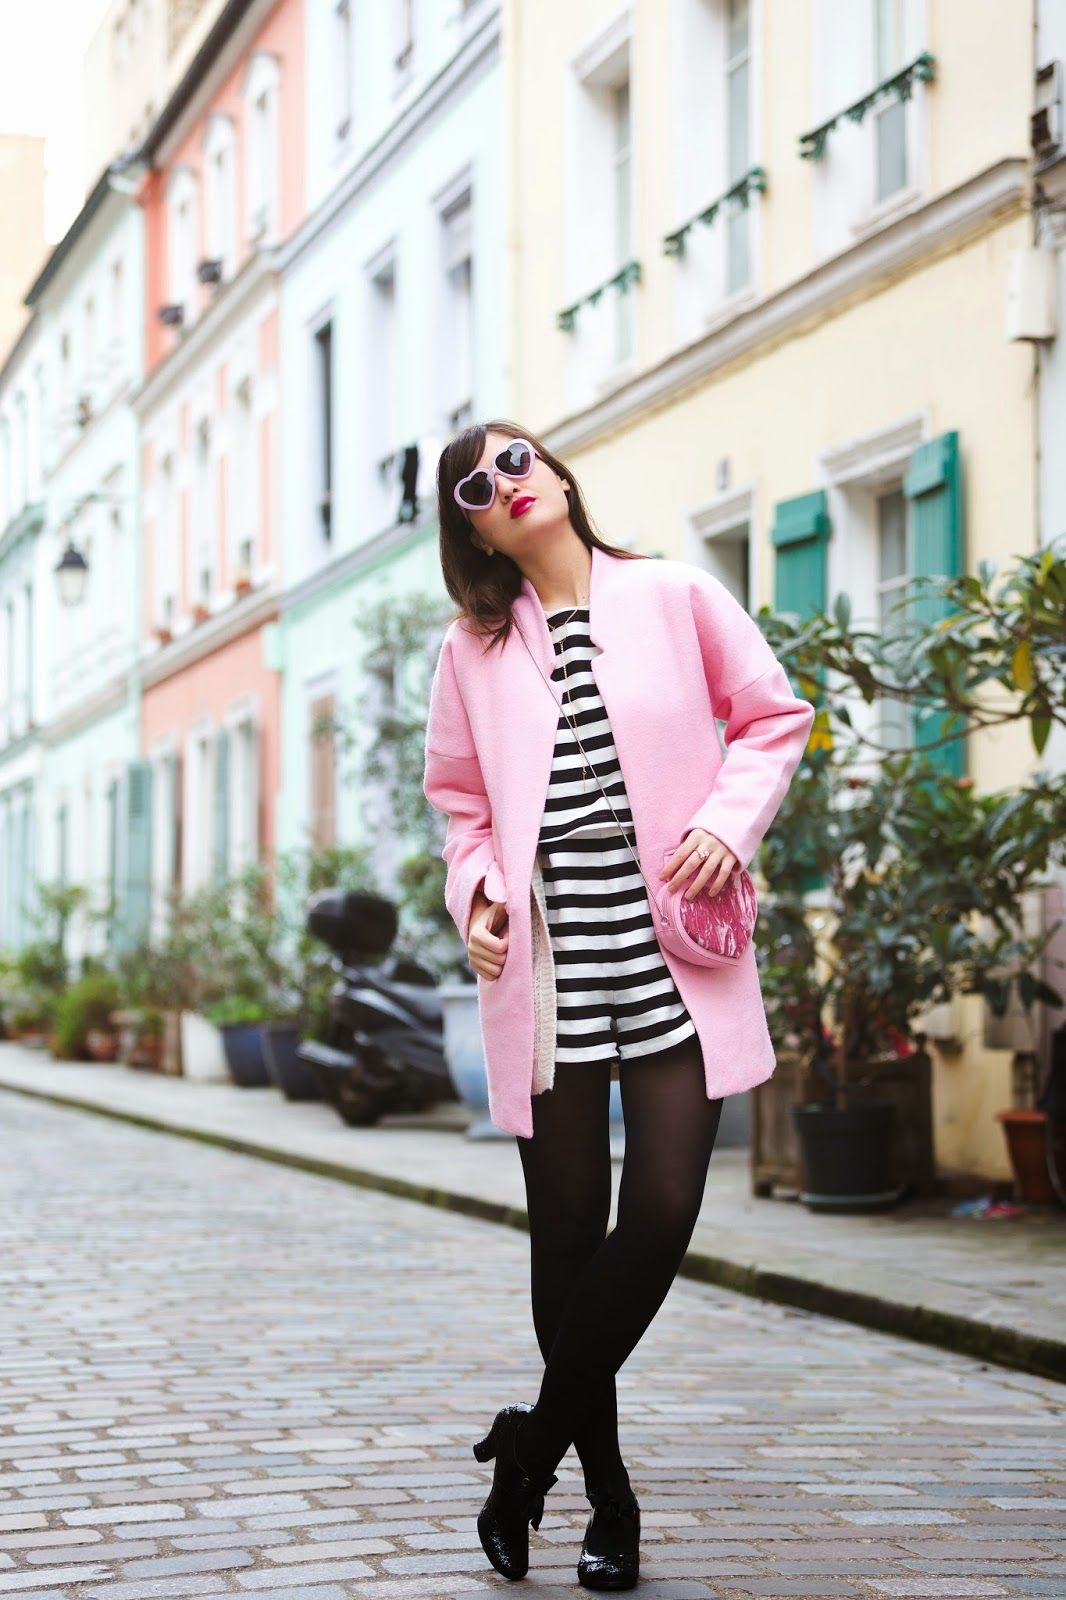 Stripey and pink look